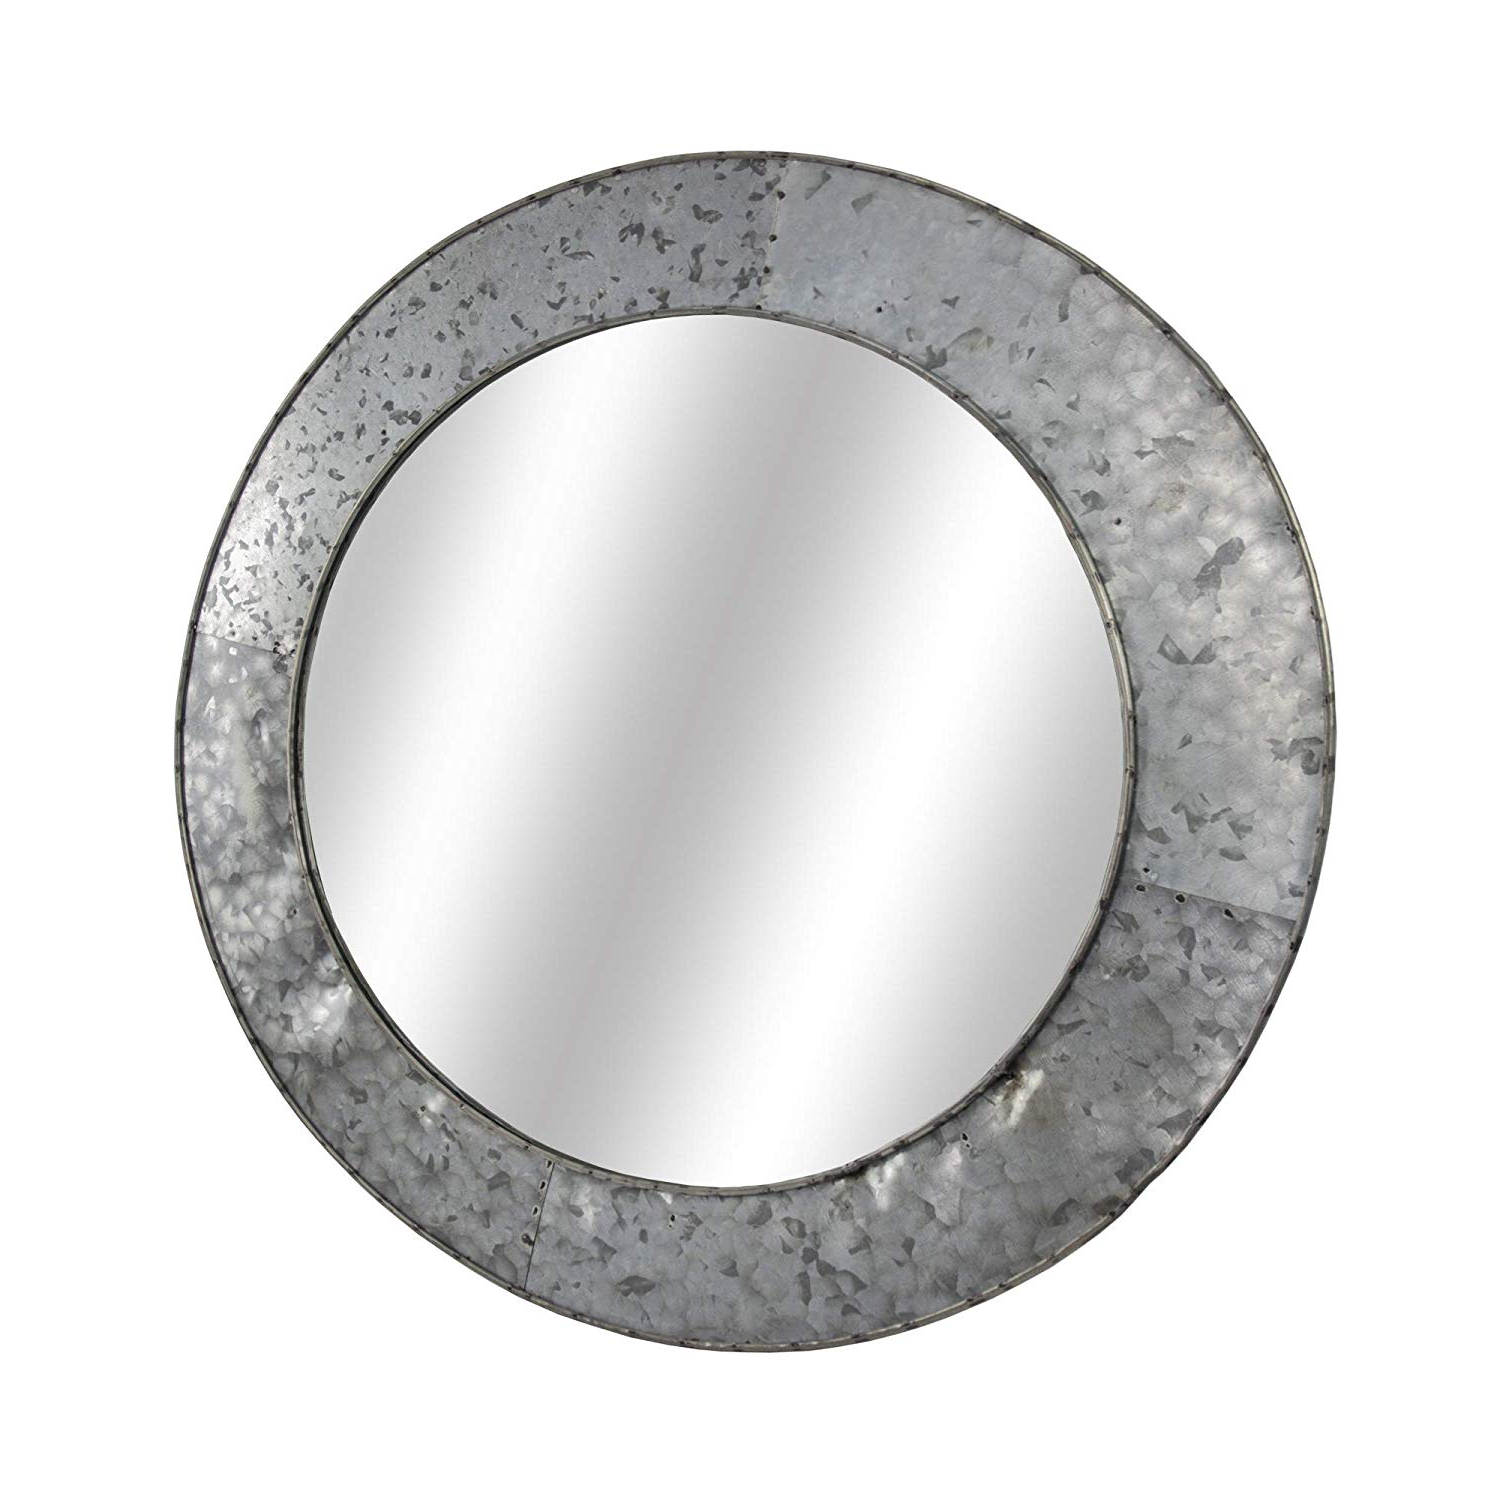 Amazon: American Art Decor Galvanized Round Metal Wall Vanity Throughout Preferred Round Galvanized Metallic Wall Mirrors (View 2 of 20)